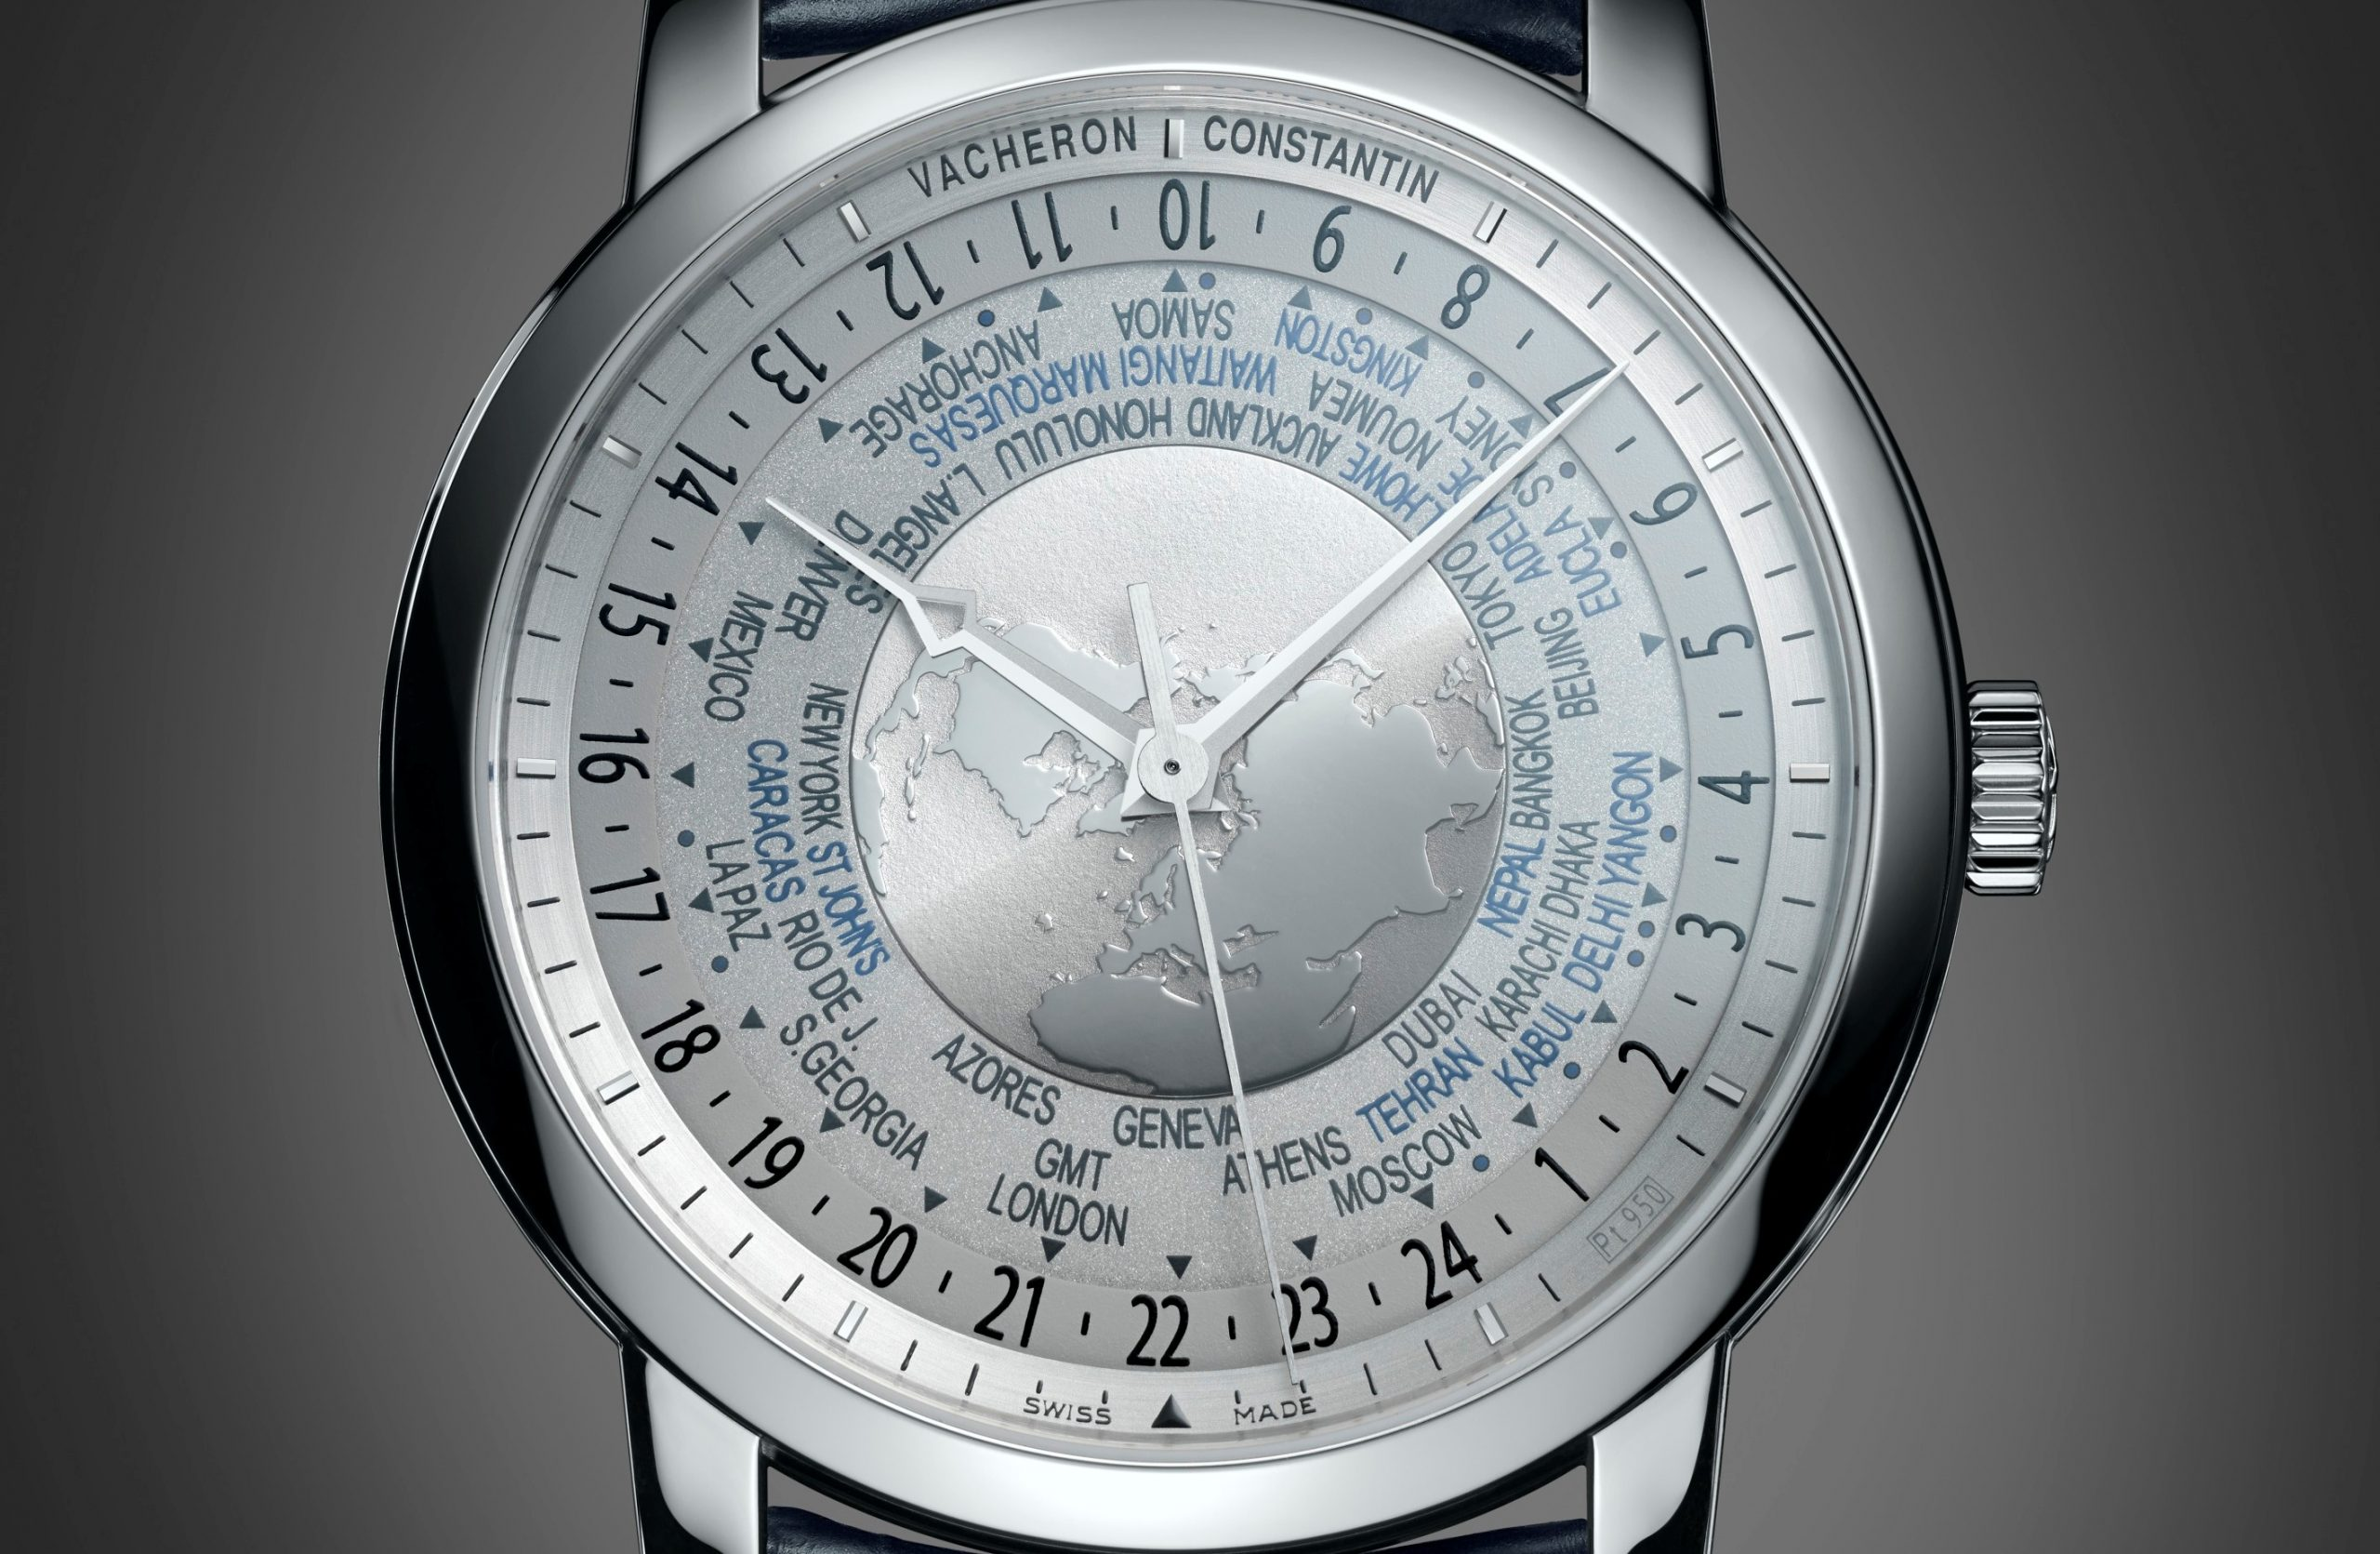 Vacheron Constantin Traditionnelle Horas do Mundo